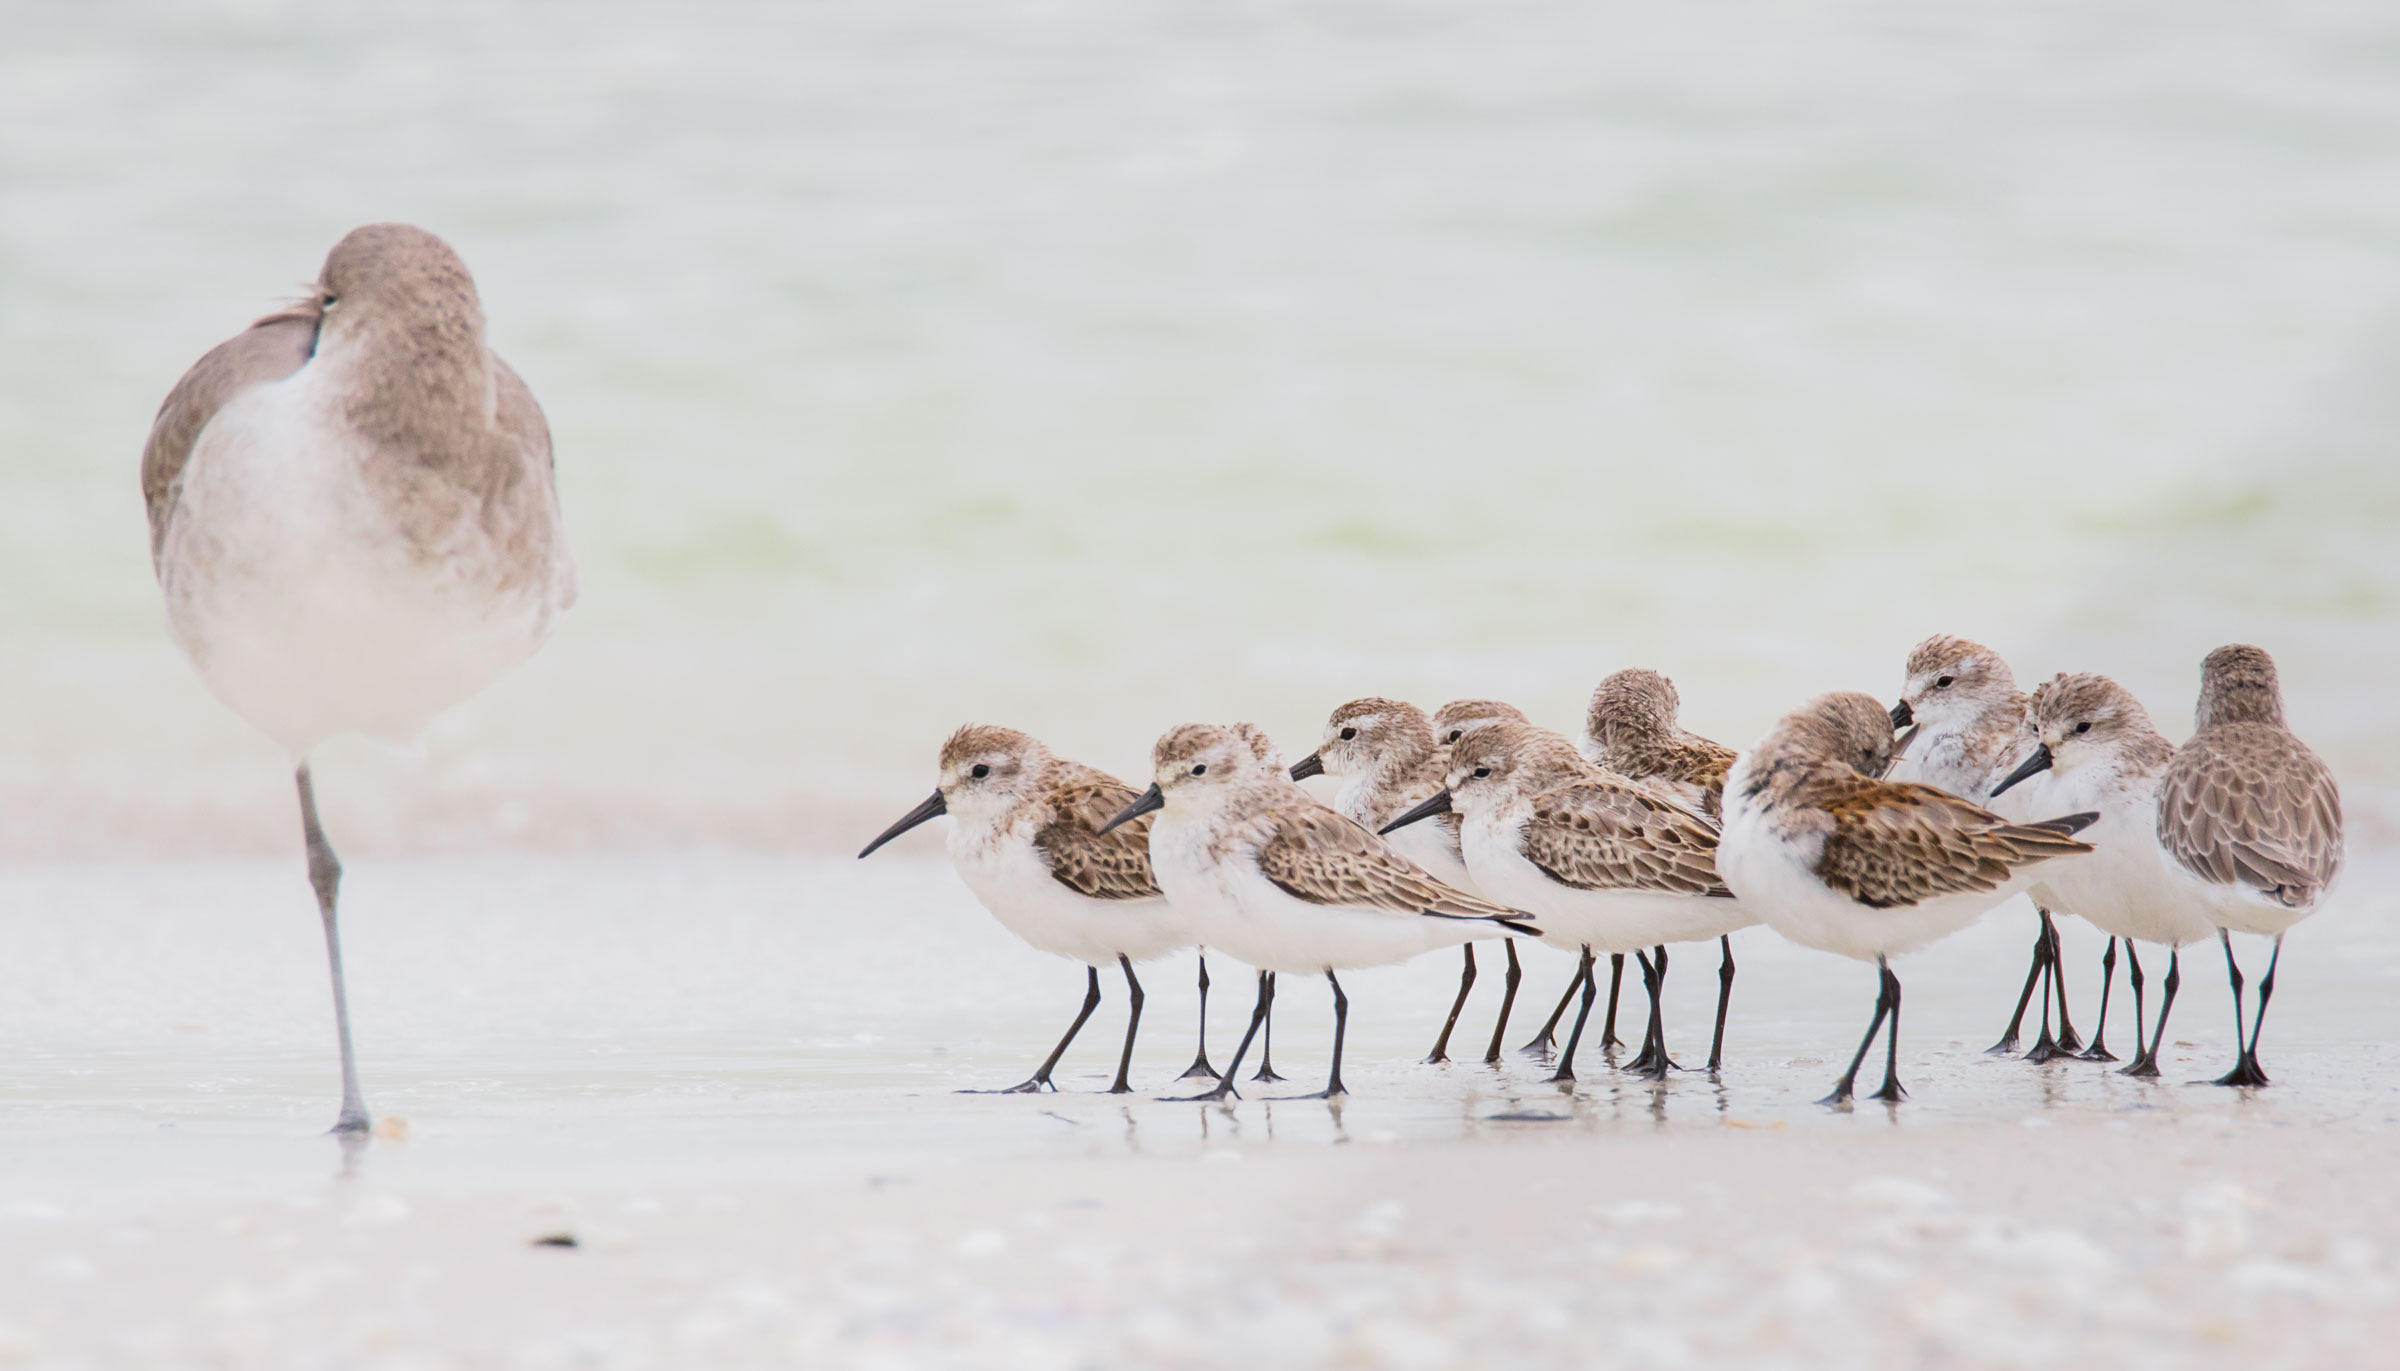 A Willet next to a flock of Western Sandpipers. Most North American shorebirds are already on course for fall migration. Jean Hall/Audubon Photography Awards